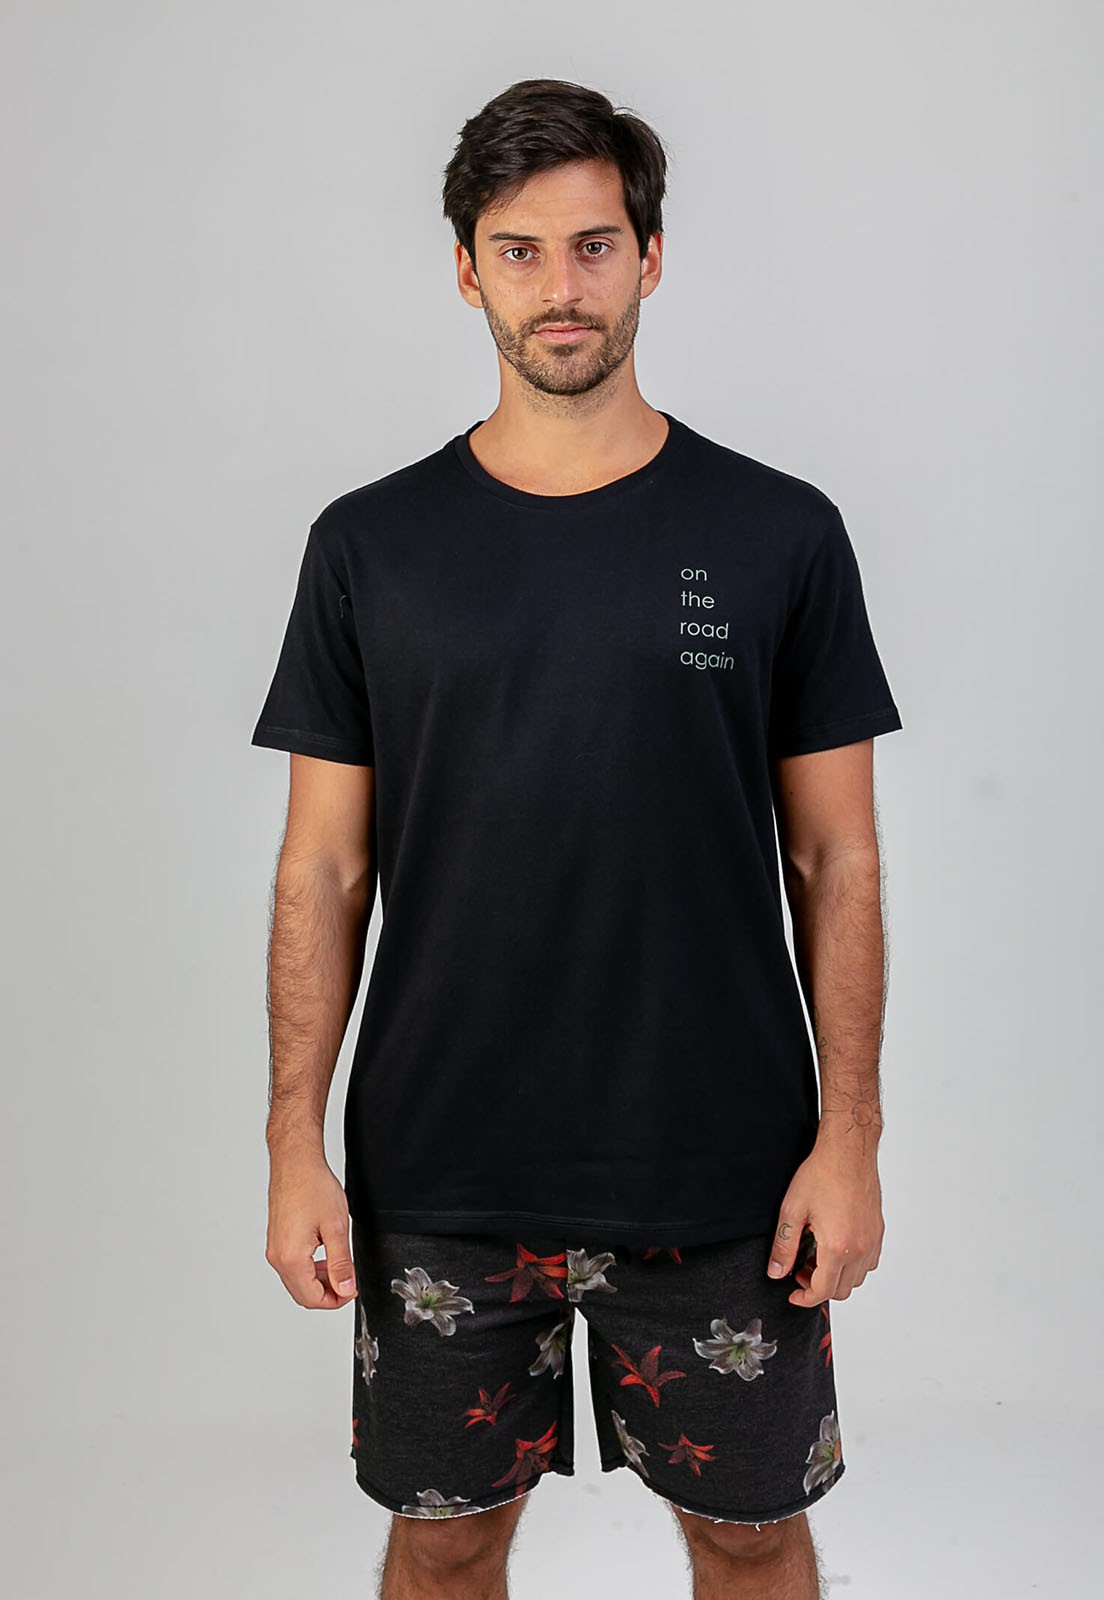 T-shirt On the road preto melty  - melty surf & Co.